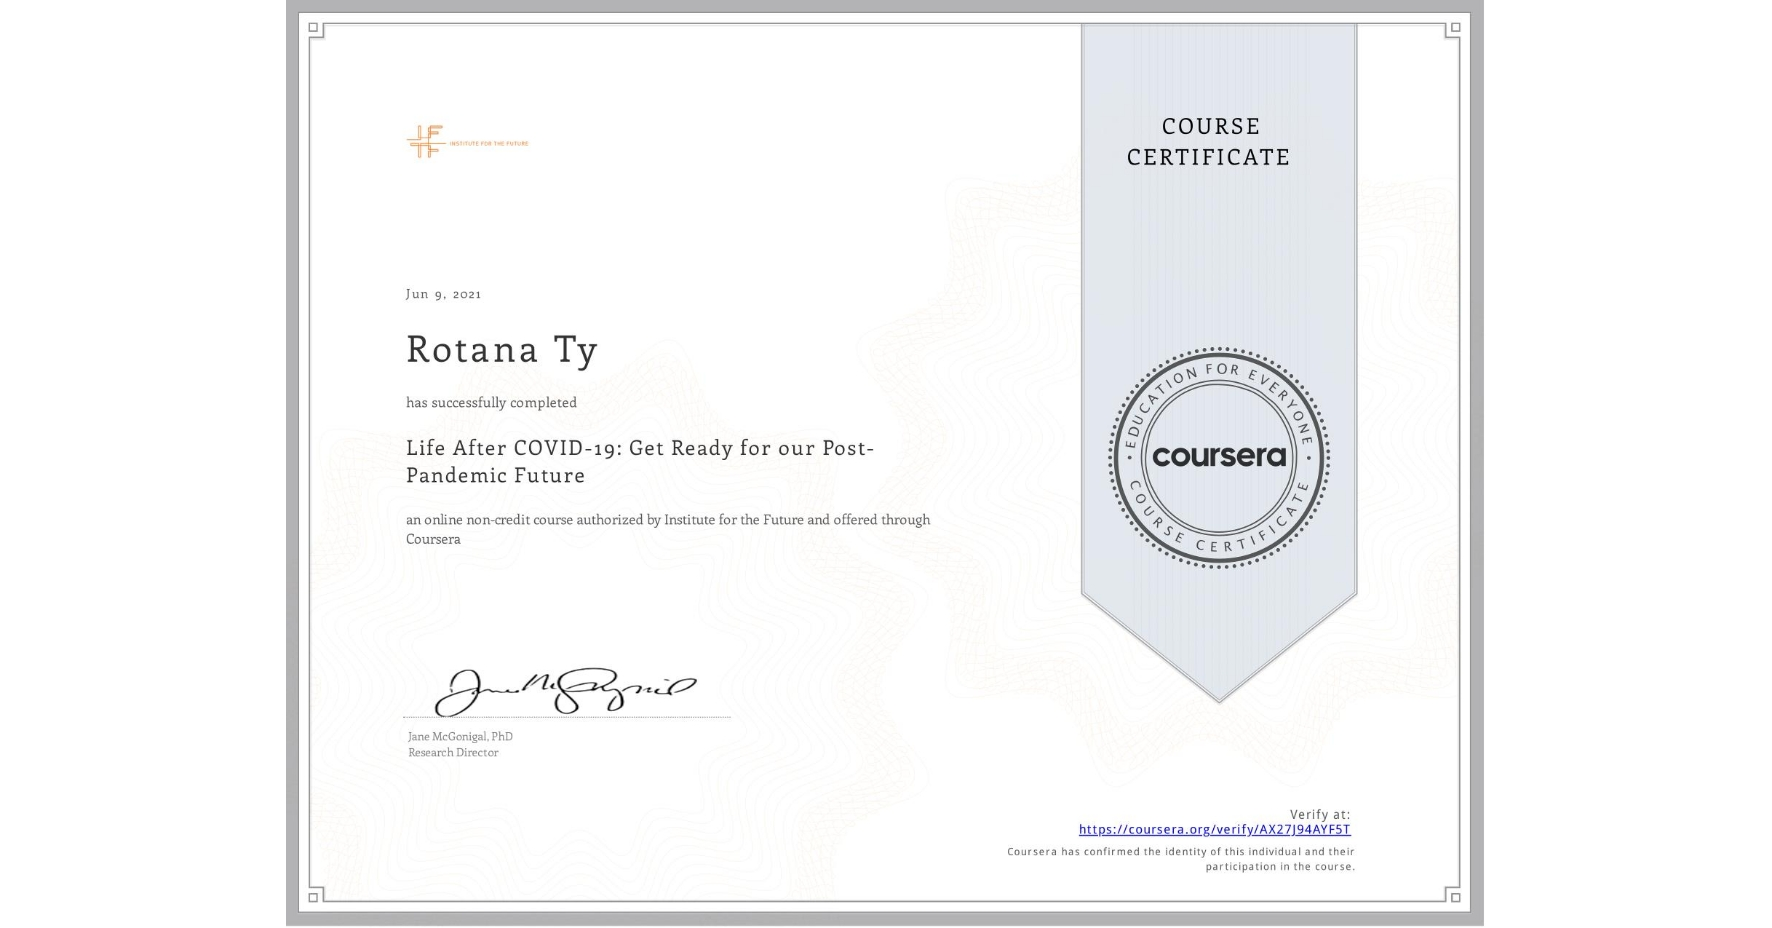 View certificate for Rotana Ty, Life After COVID-19: Get Ready for our Post-Pandemic Future, an online non-credit course authorized by Institute for the Future and offered through Coursera